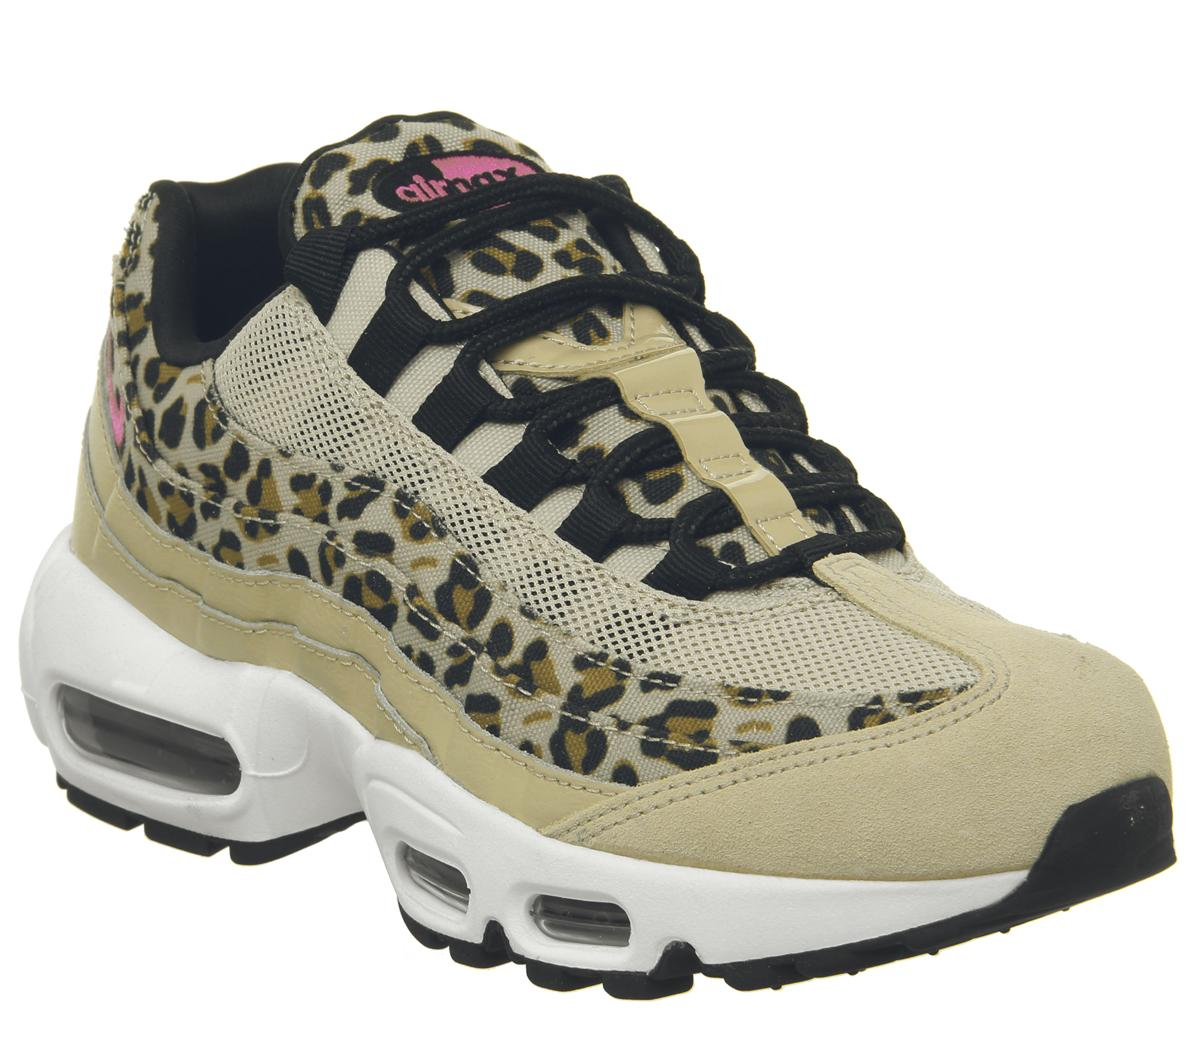 Y equipo Conciliador Agua con gas  Nike Air Max 95 Trainers Desert Ore Wheat Leopard - Hers trainers